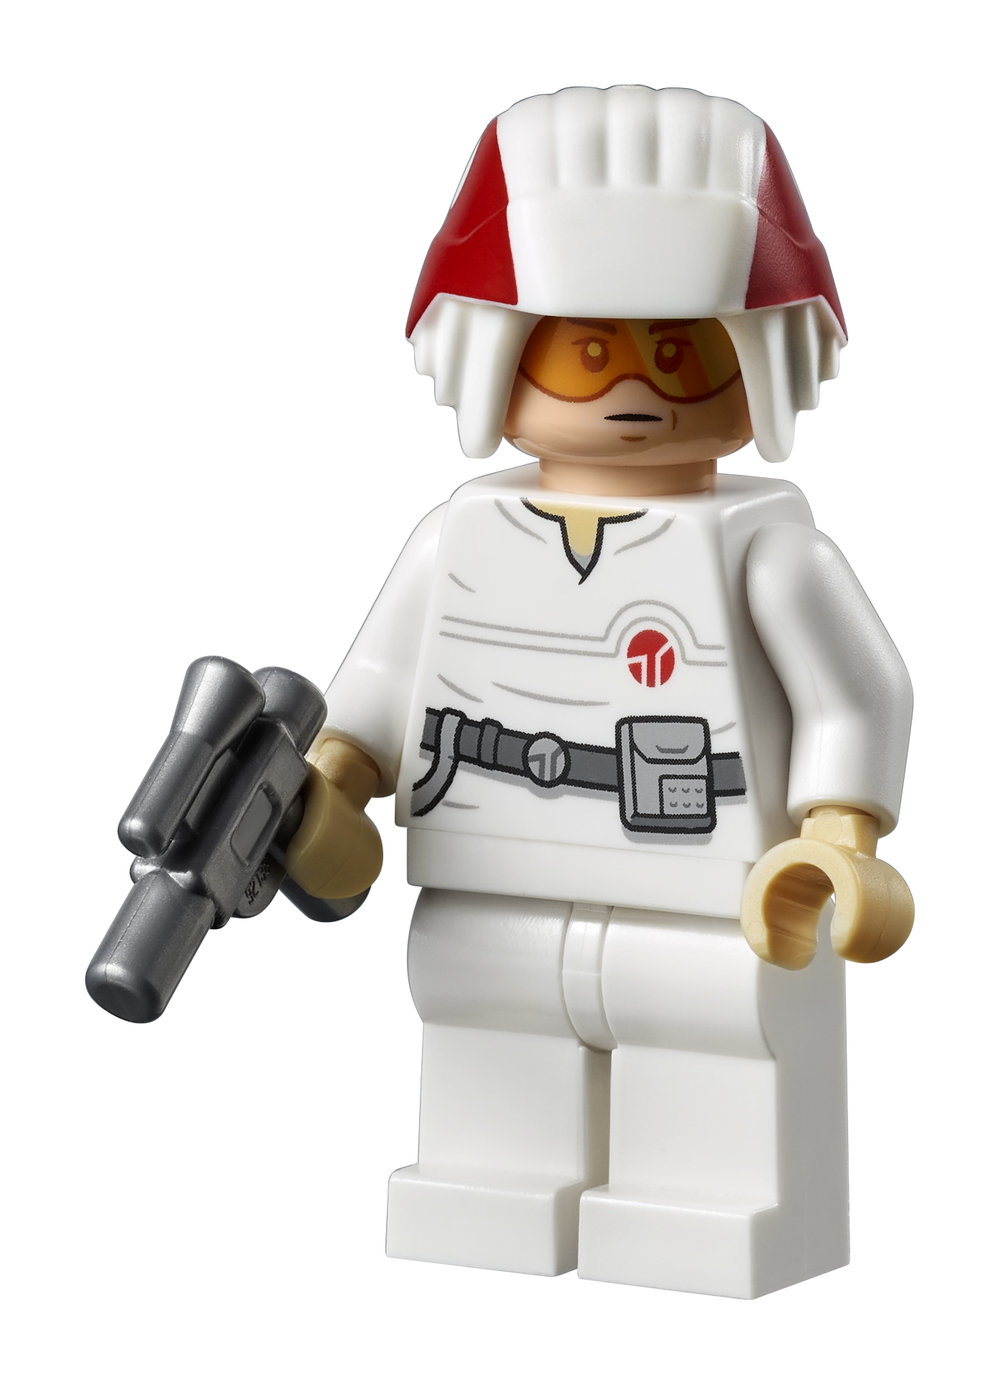 75222_Top_Panel_Minifigure_04.jpg